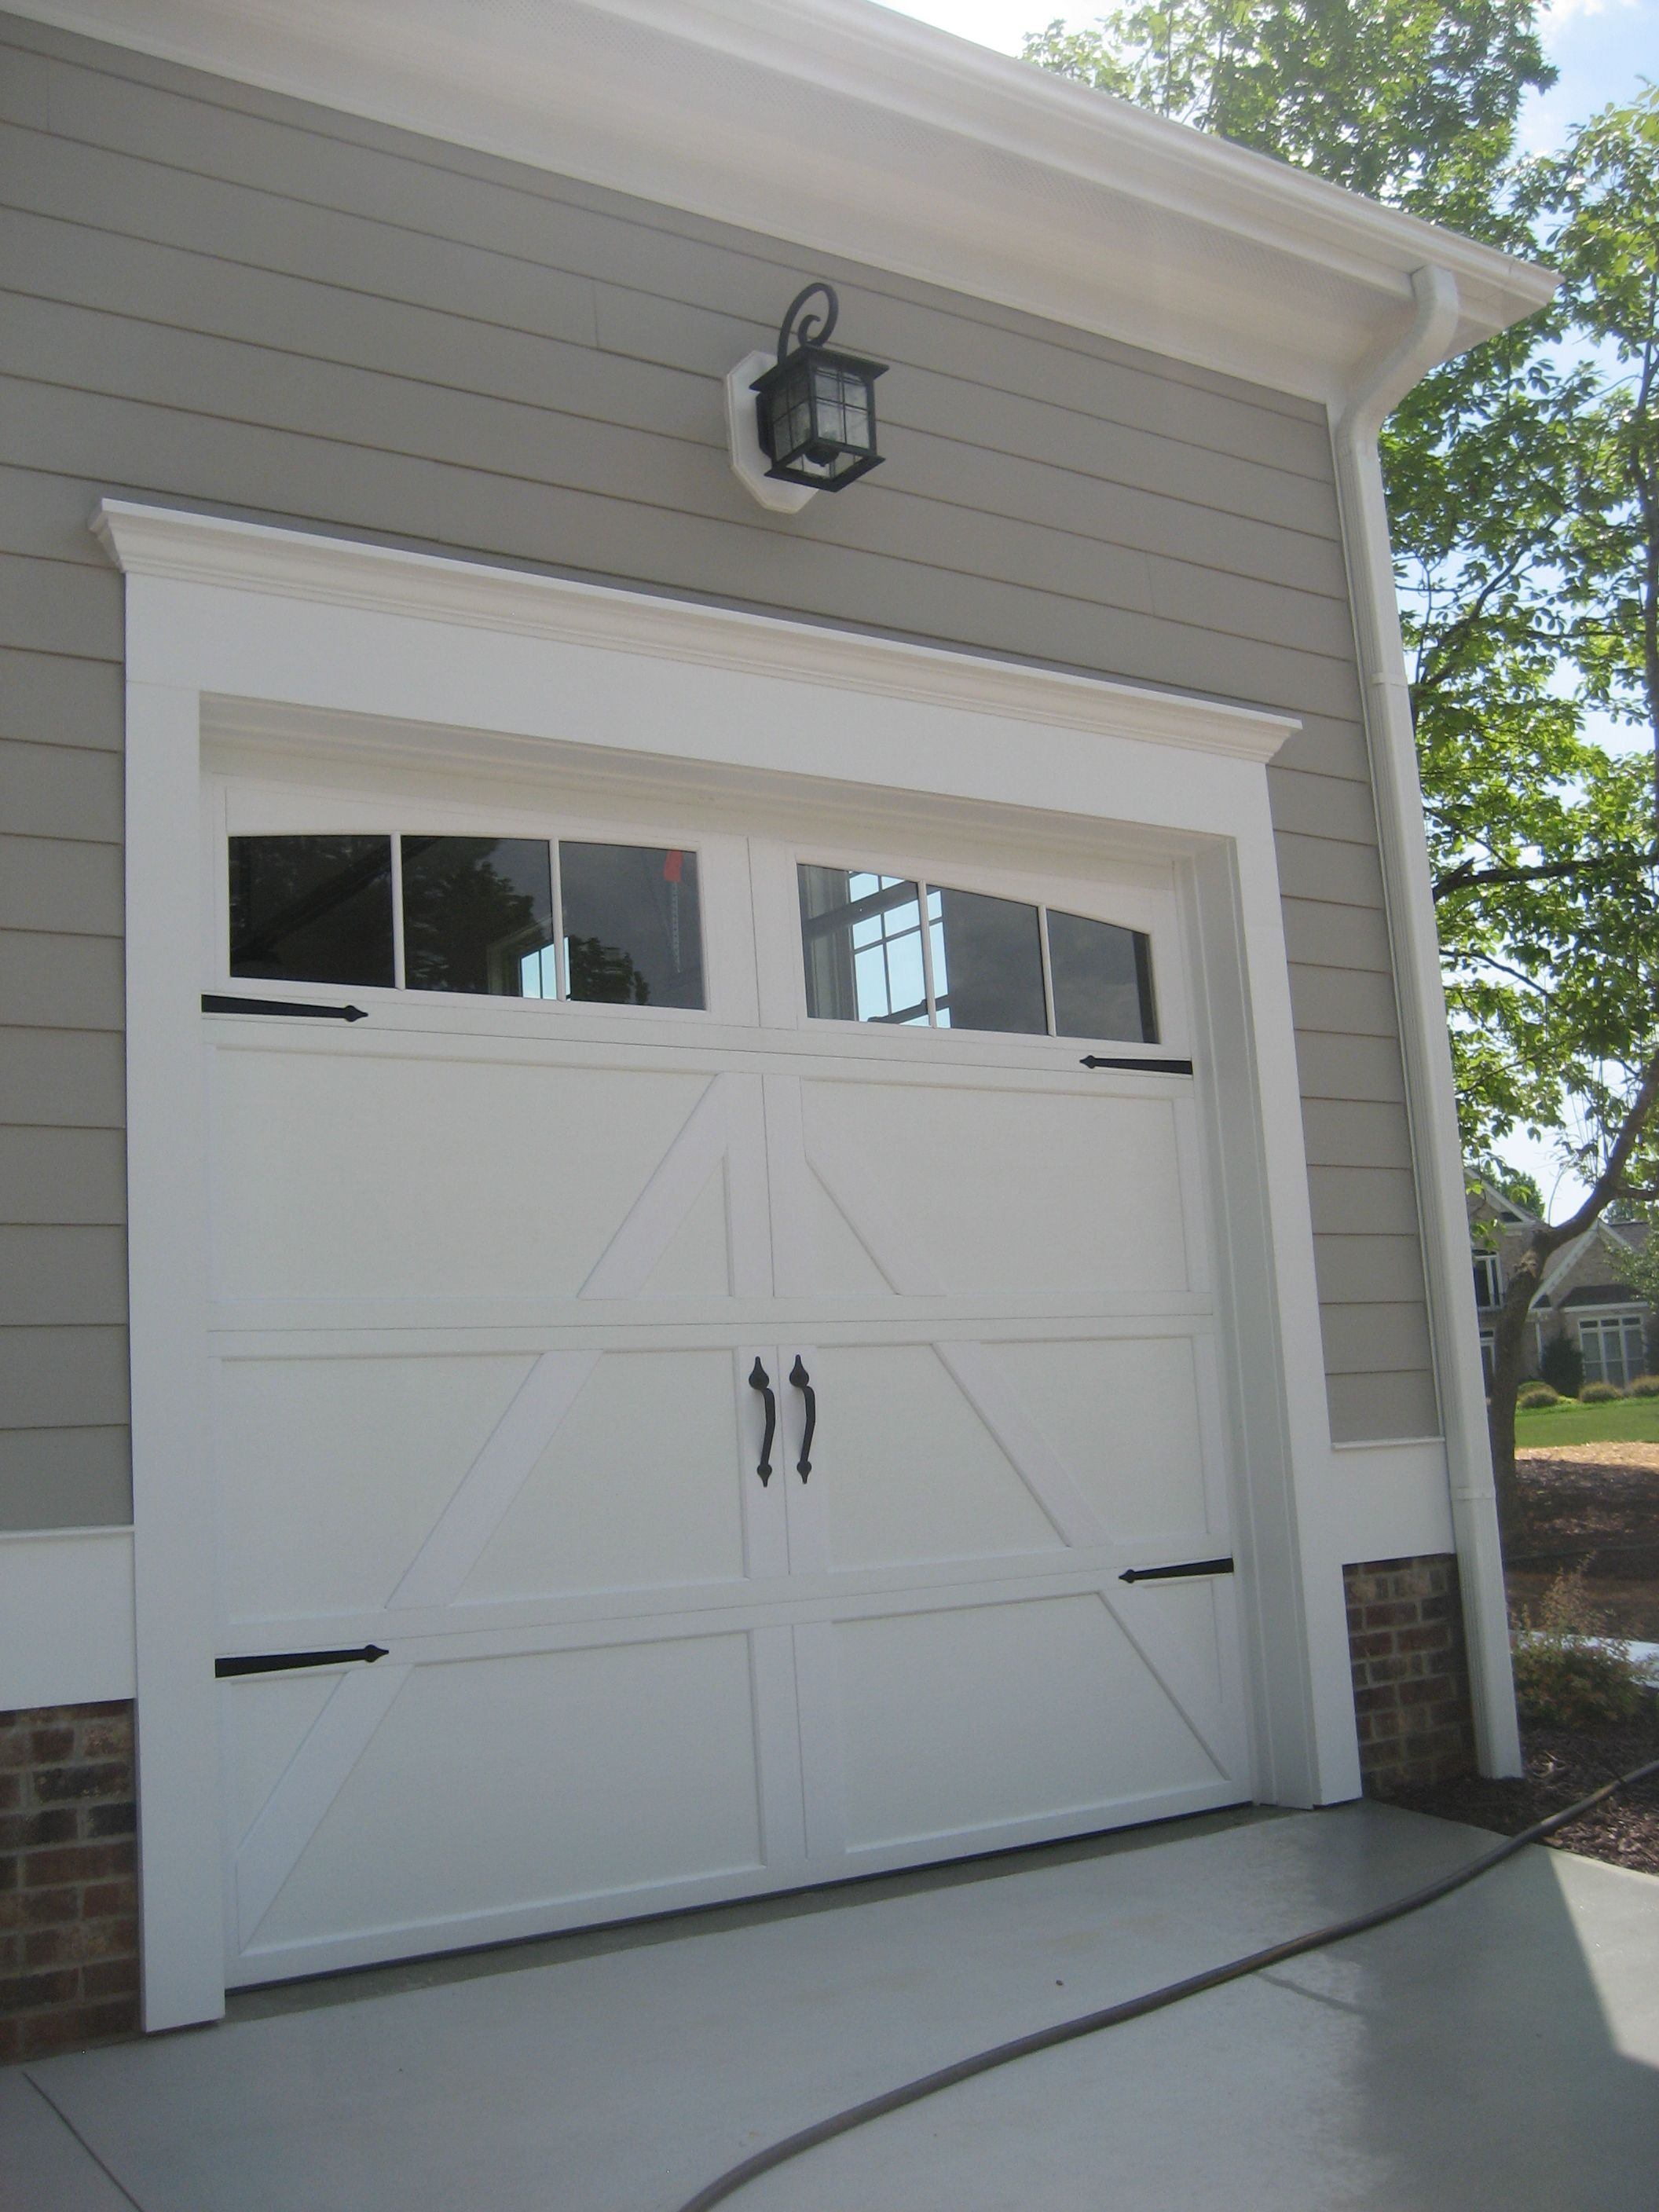 Home Hardware Windows Add Trim To Garage Door Add Hardware To You Boring